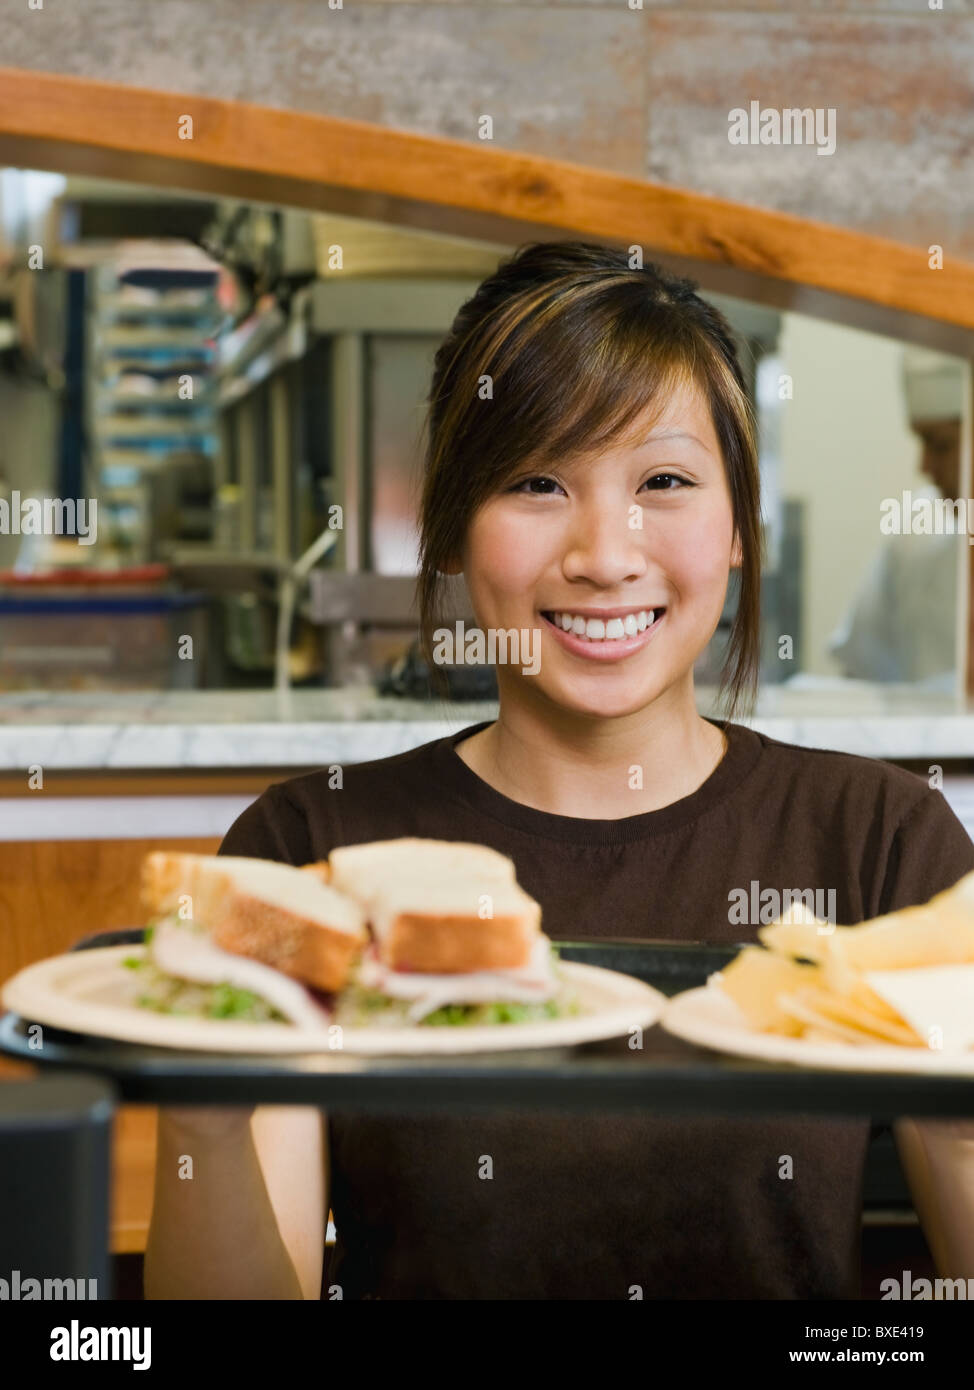 Woman holding tray of food - Stock Image